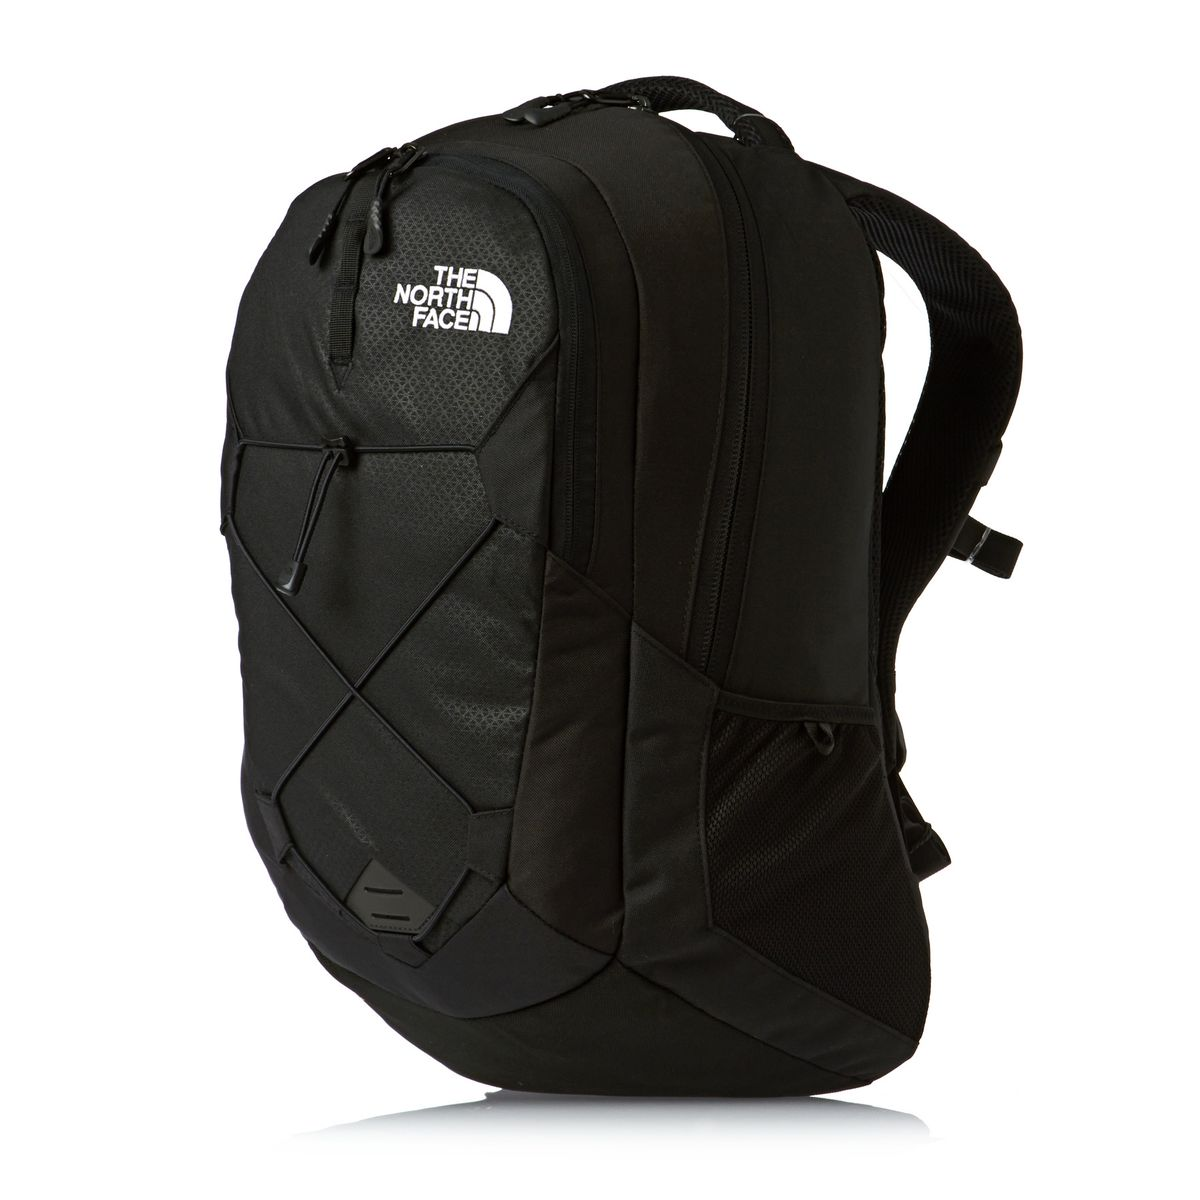 the-north-face-backpacks-the-north-face-jester-backpack-tnf-black